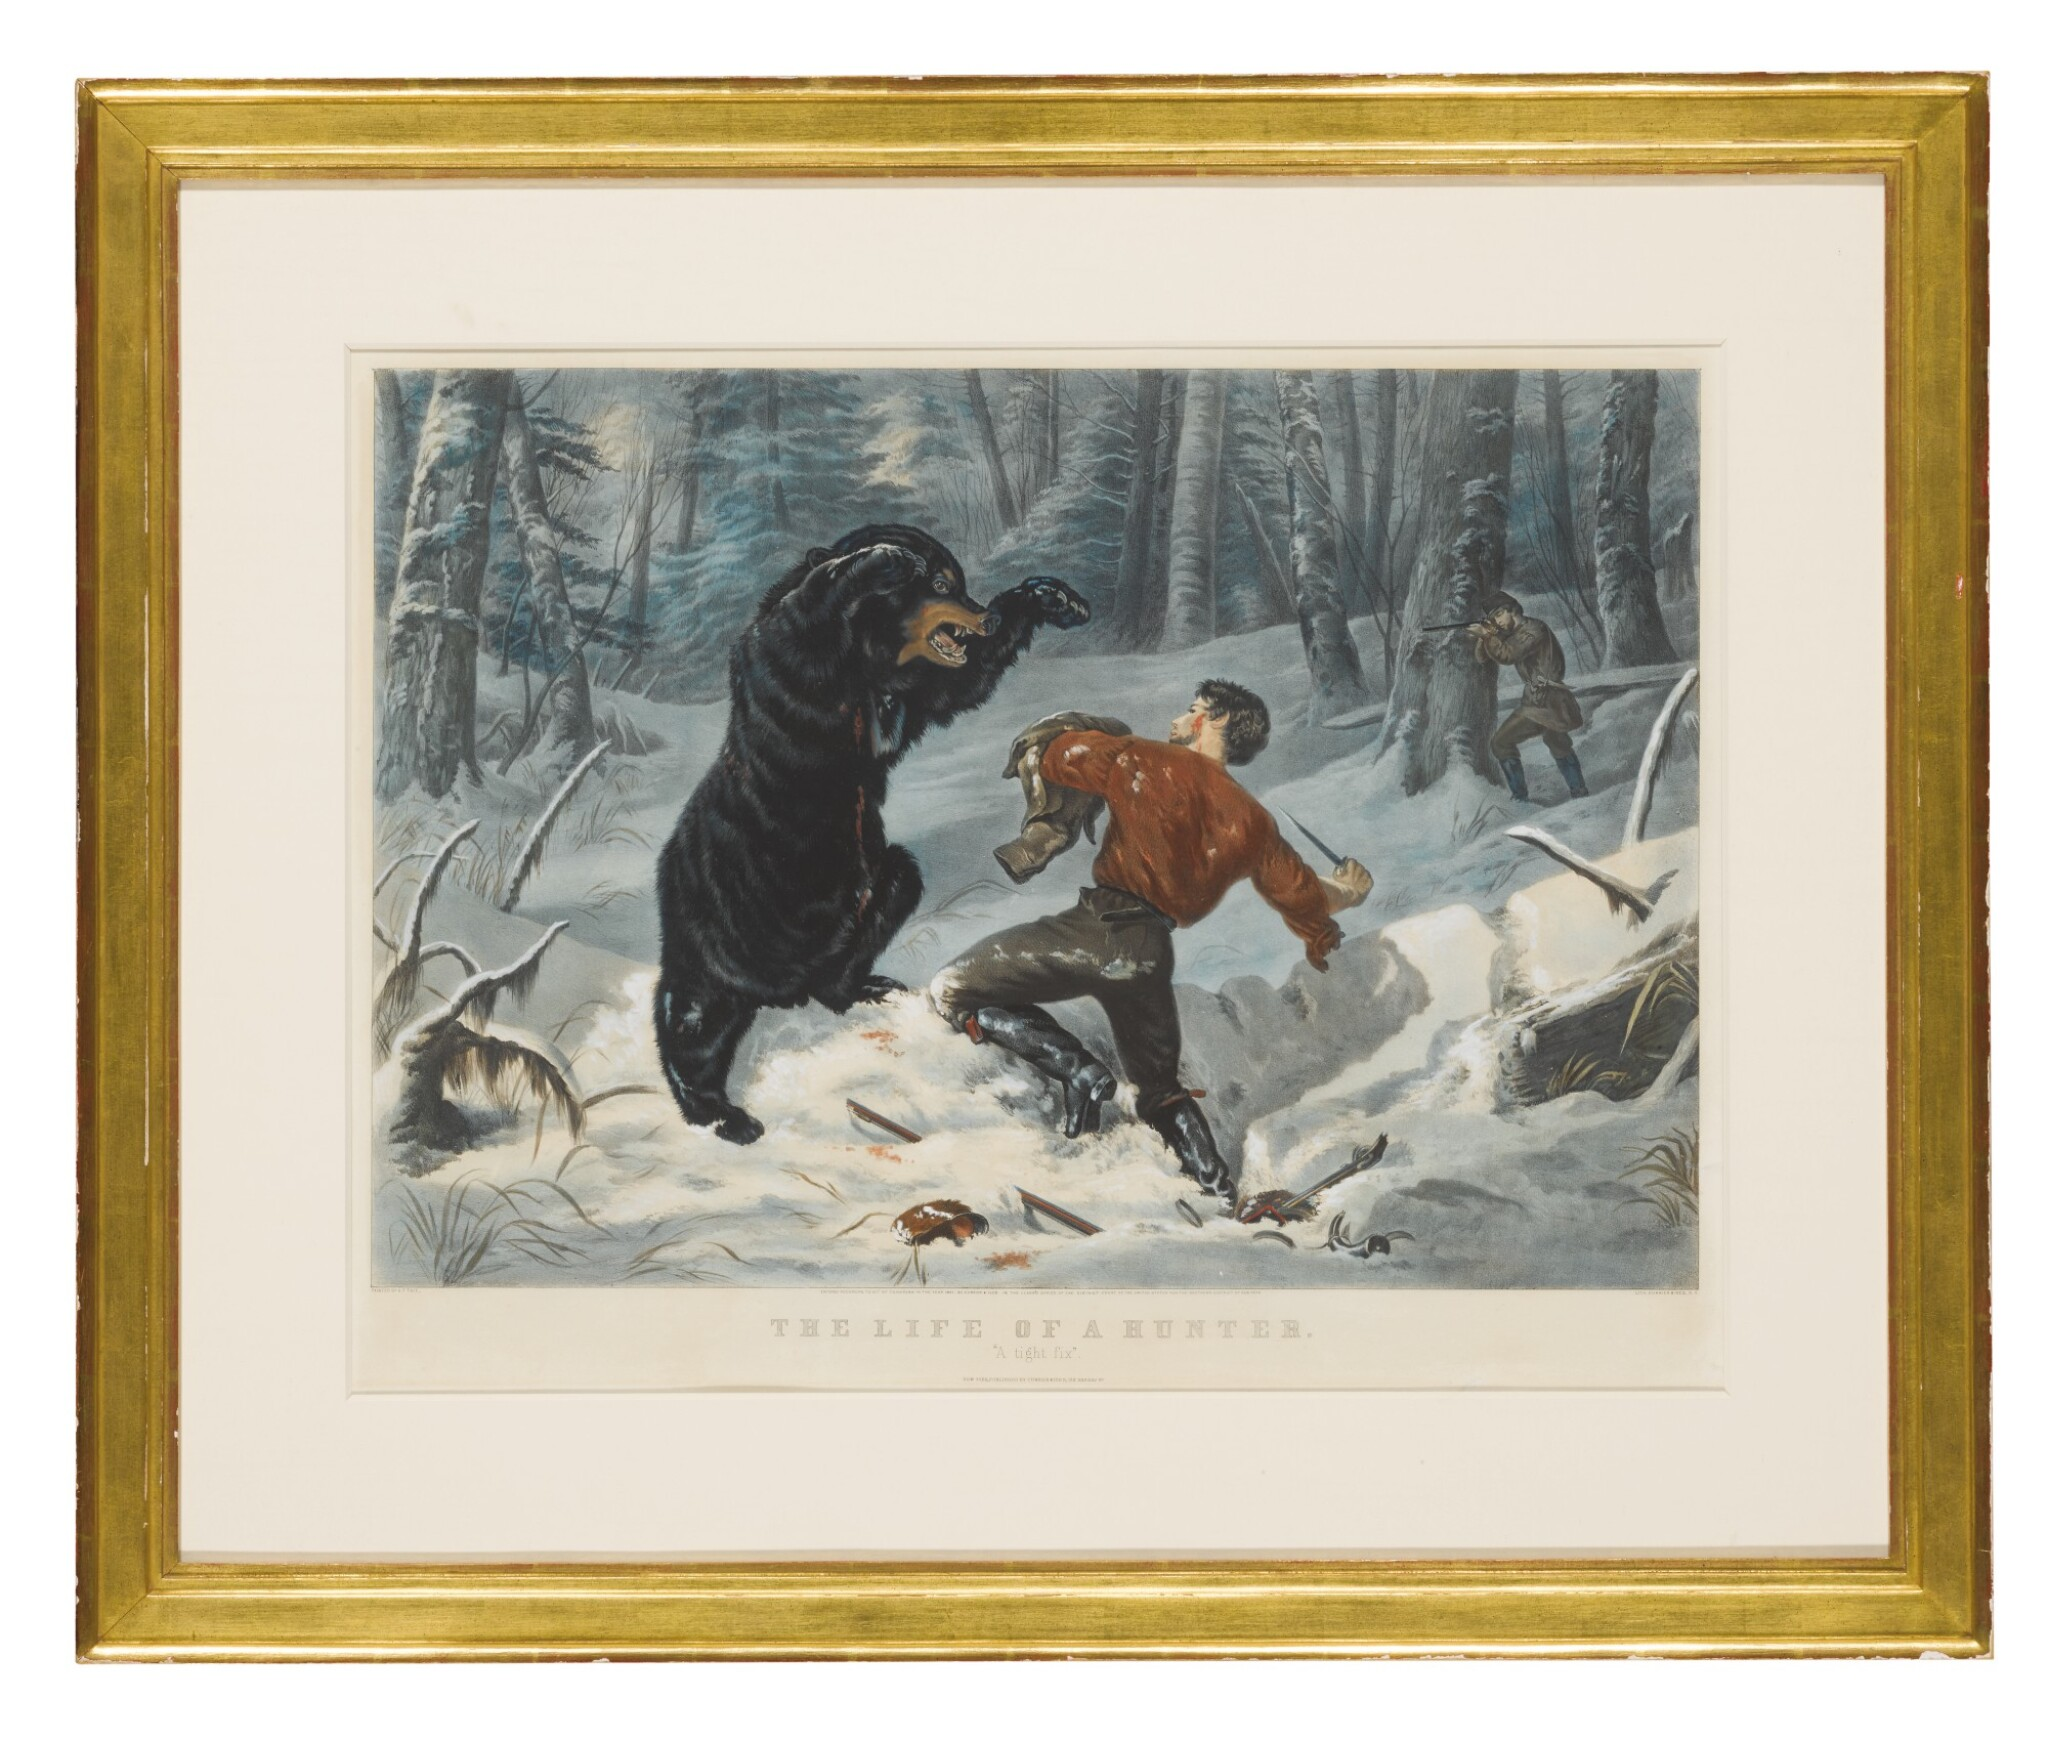 """View full screen - View 1 of Lot 1762. CURRIER & IVES (PUBLISHERS)   THE LIFE OF A HUNTER: """"A TIGHT FIX"""" (GALE 3790)."""